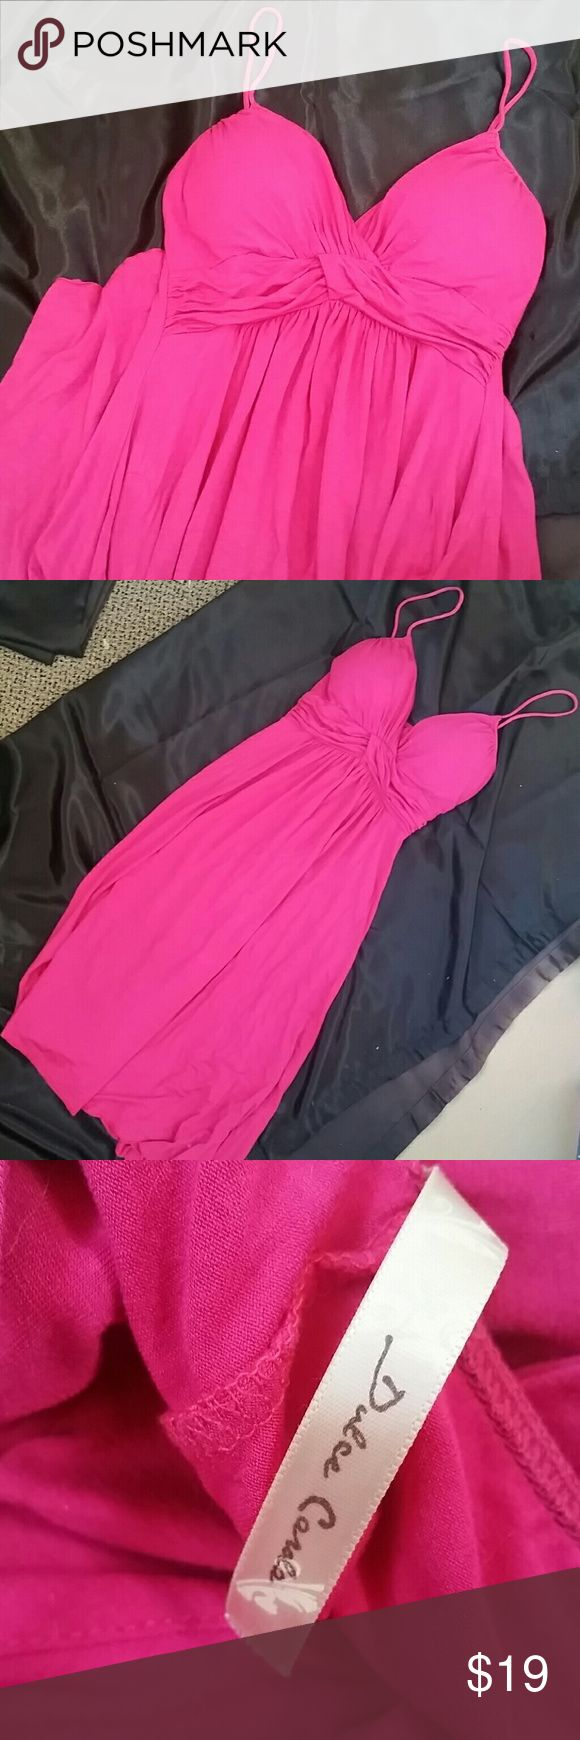 Beautiful Pink sweetheart aline empire waist dress This pink dress is very elegant and feminine and fuchsia within strap details lightly padded cups sweetheart neckline and a high waist. Hits mid low thigh. Beautiful dress I just never wear bright pink! Great quality. Bought from VS years ago. Brand shown on tag Victoria's Secret Dresses